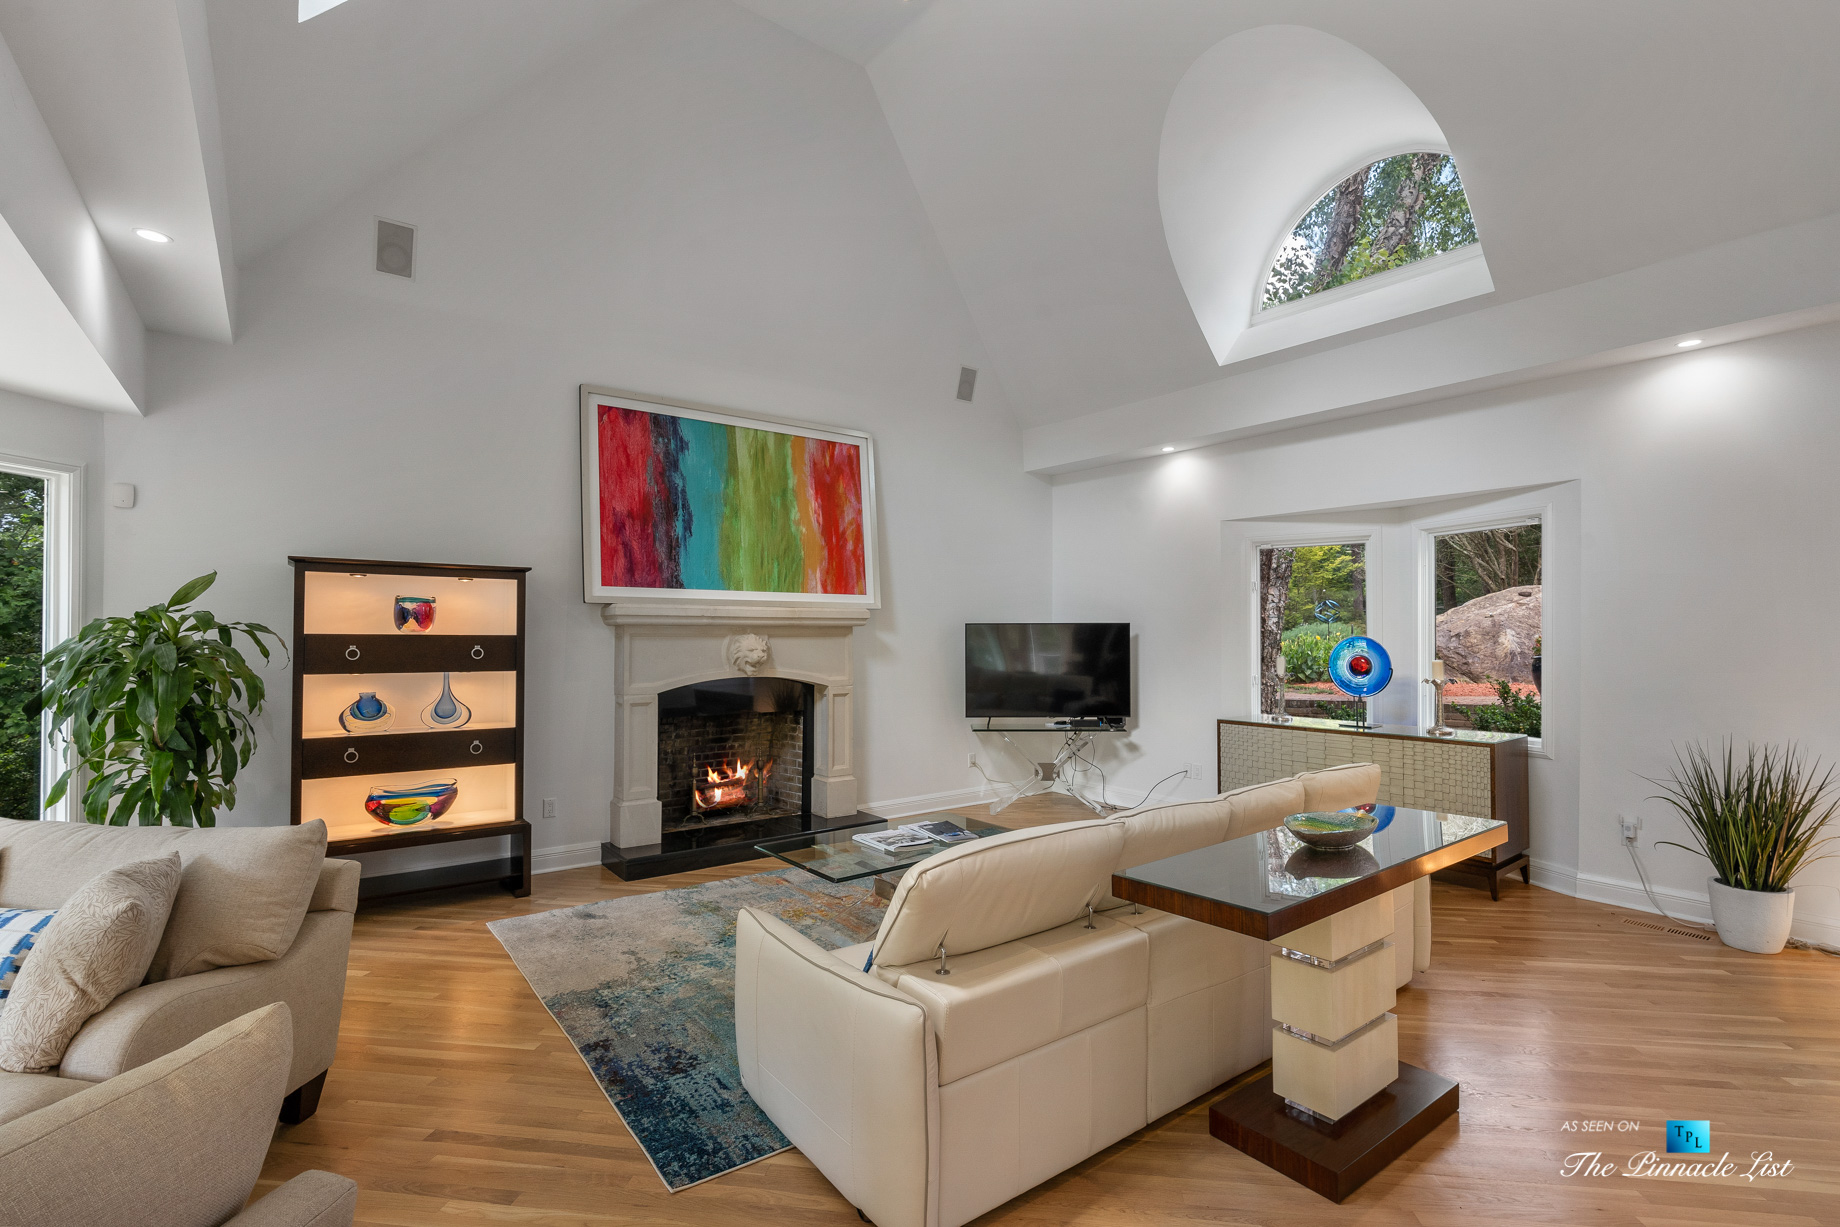 3906 Paces Ferry Rd NW, Atlanta, GA, USA - Living Room with Fireplace - Luxury Real Estate - Buckhead Home